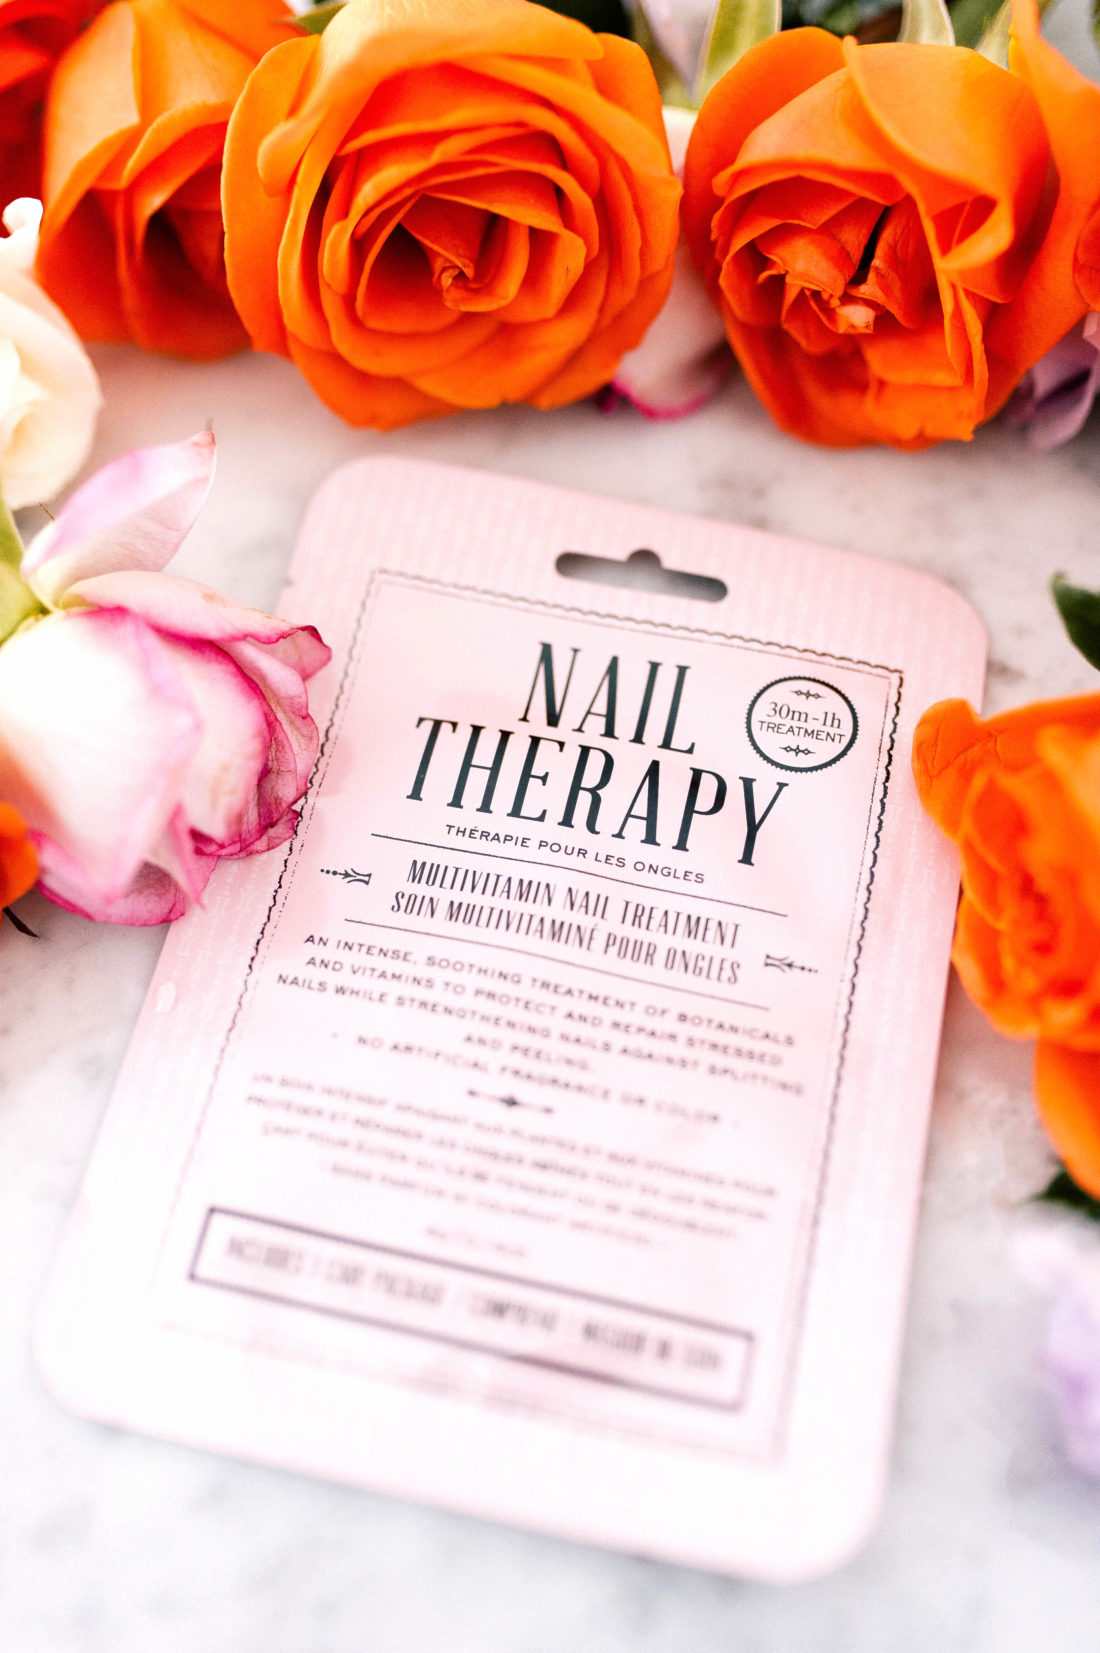 Eva Amurri Martino shares a nail therapy mask as part of her monthly obsessions roundup for April